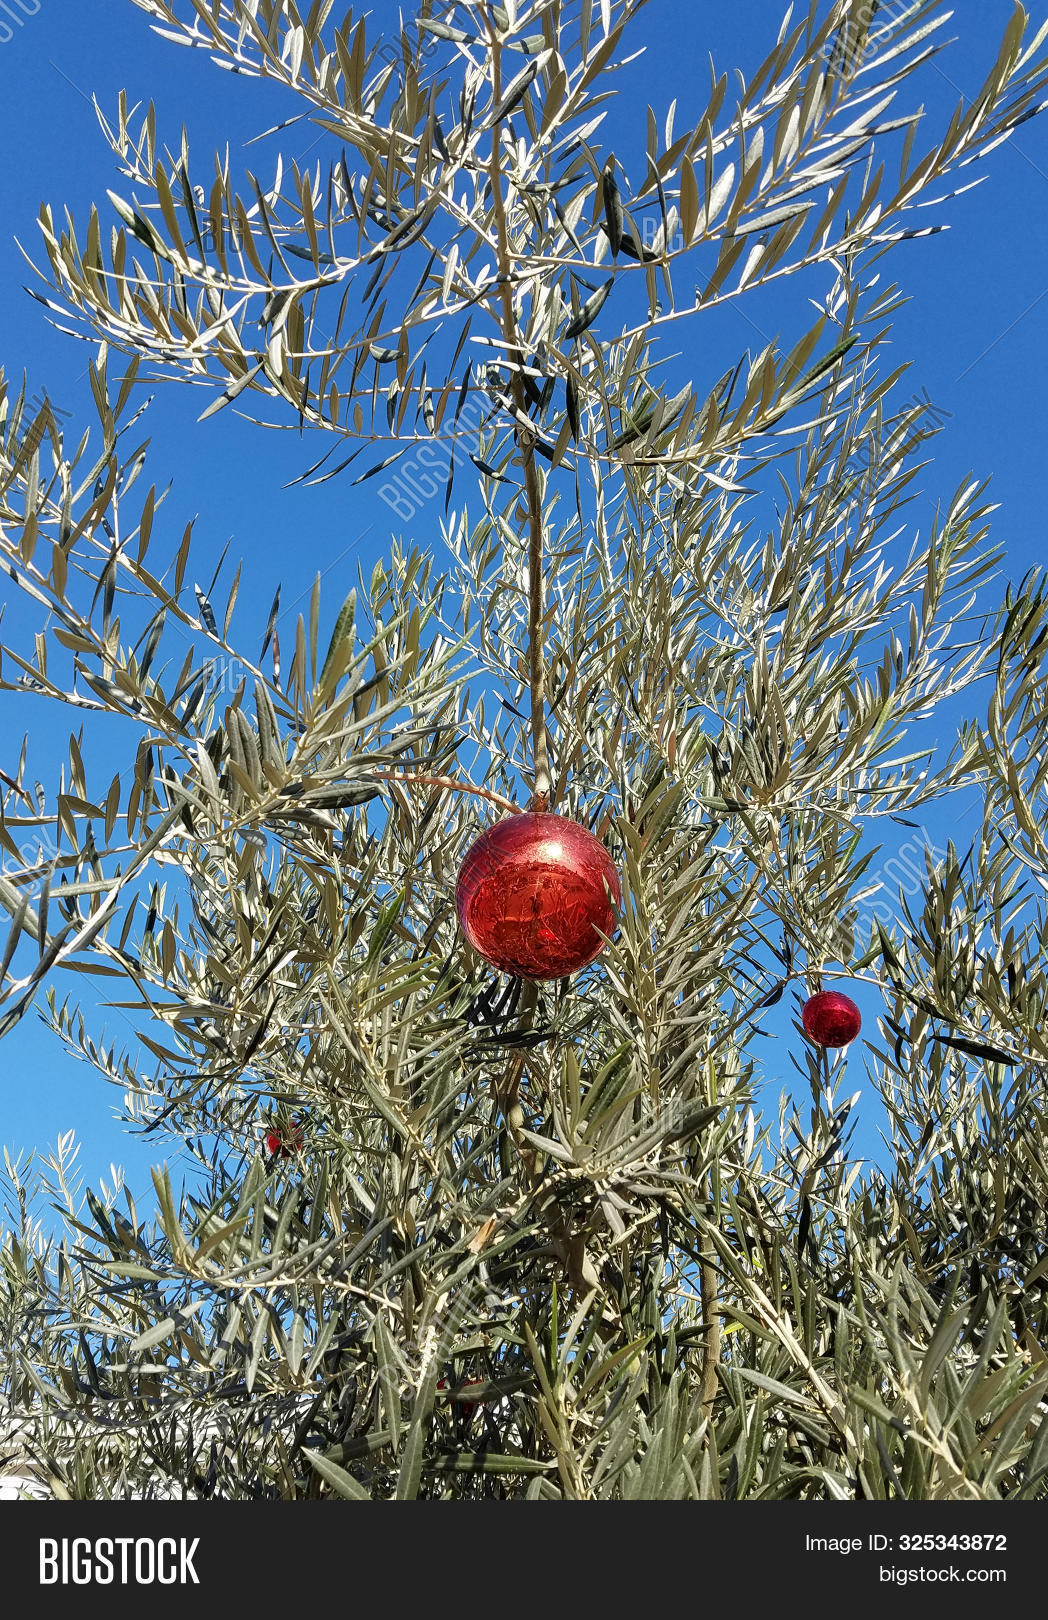 Olive Tree Christmas Image Photo Free Trial Bigstock